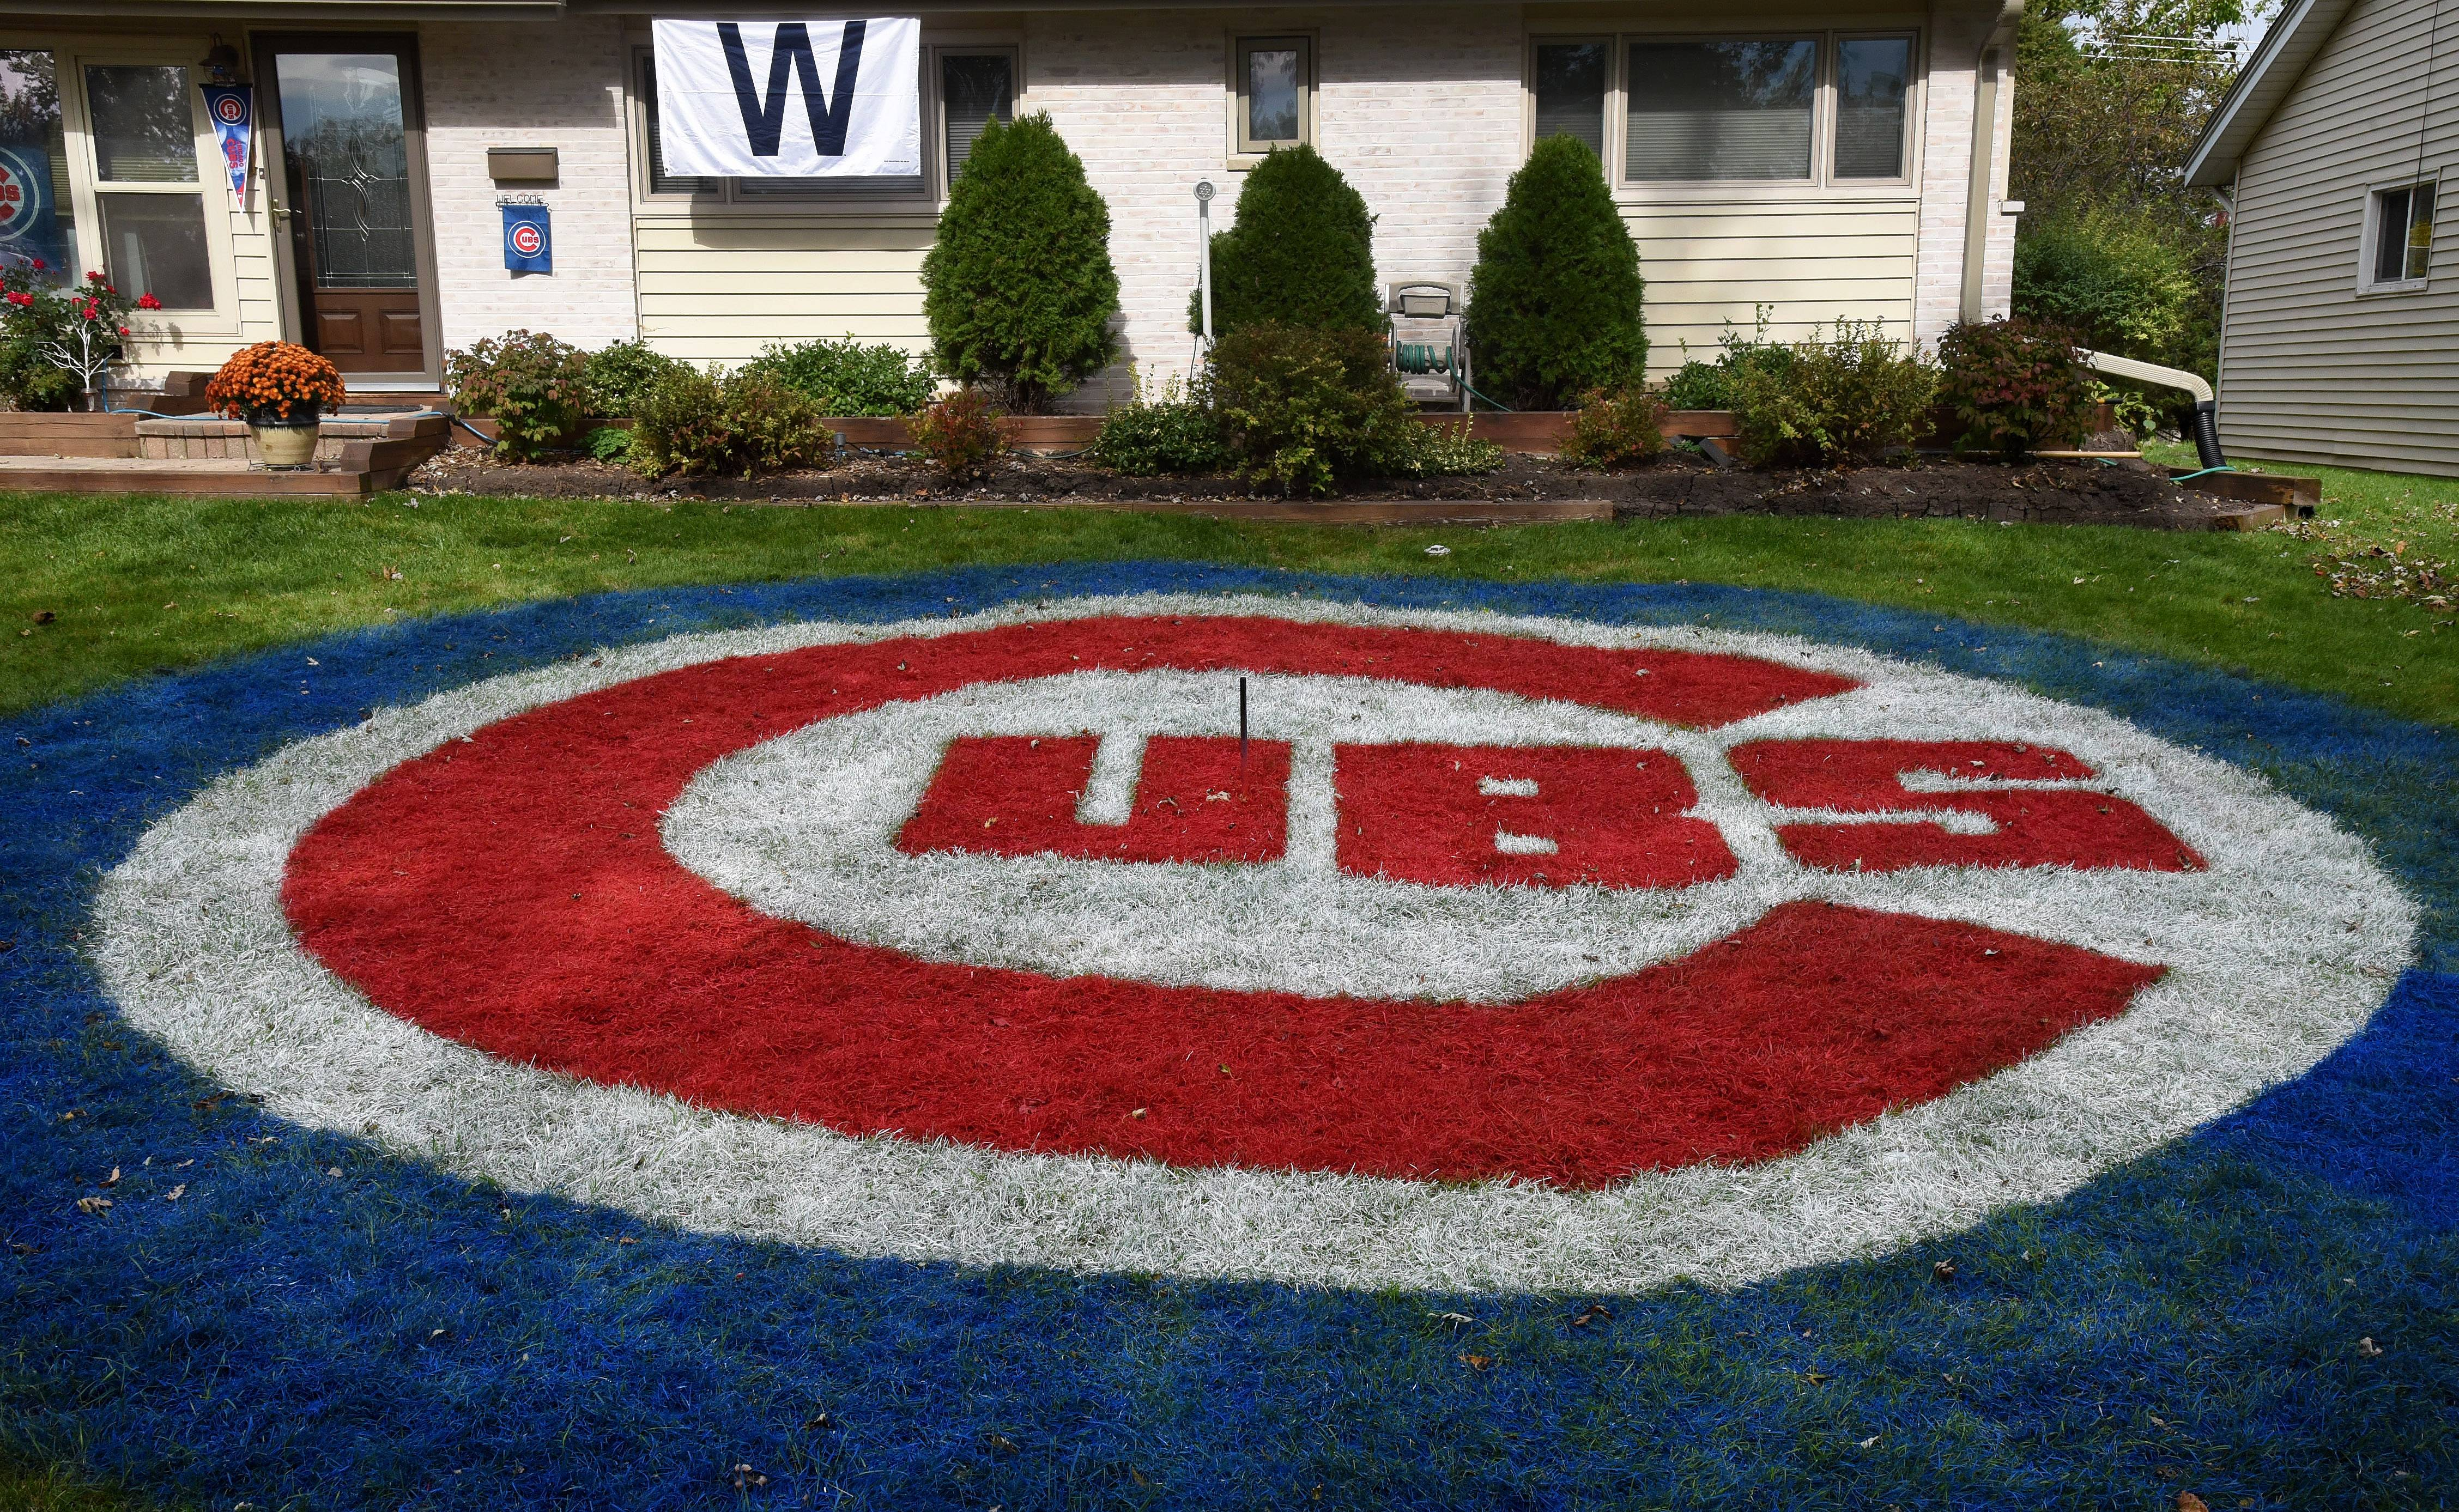 A 27-foot-diameter Cubs logo lets everyone passing by know who Jim McNamara of Hoffman Estates is pulling for in the National League championship series.